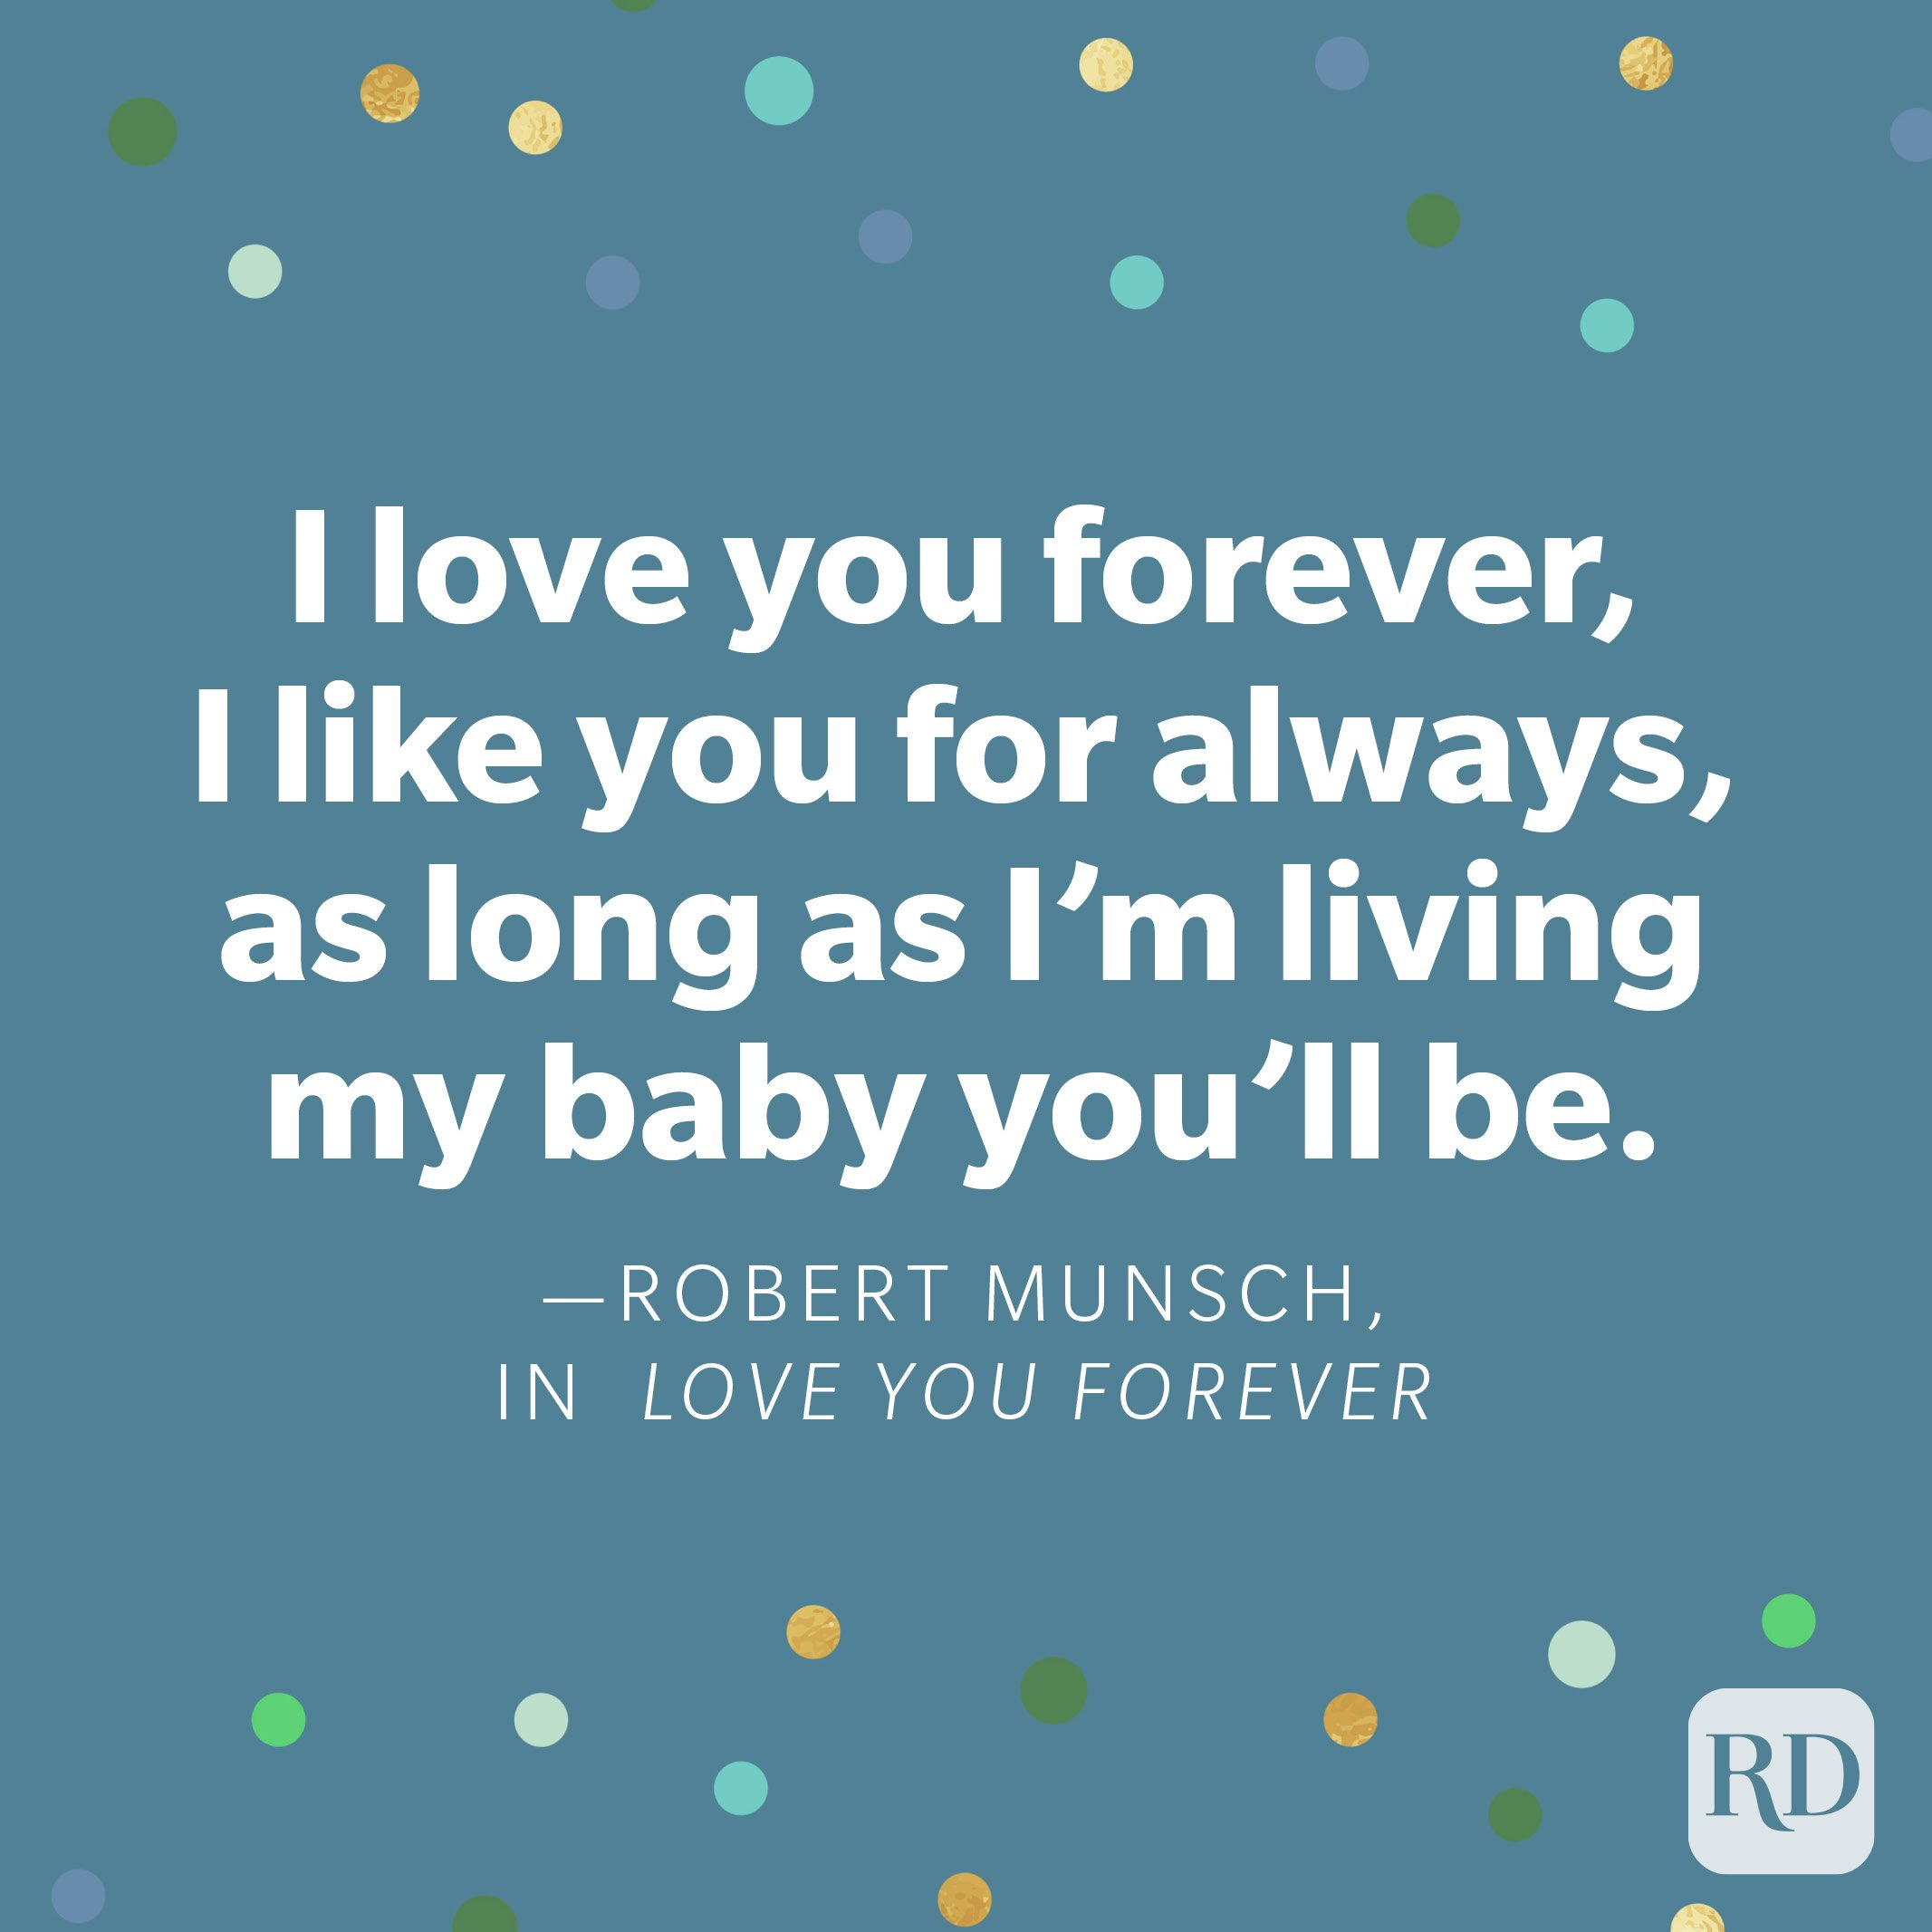 """I love you forever, I like you for always, as long as I'm living my baby you'll be."" —Robert Munsch, in Love You Forever"